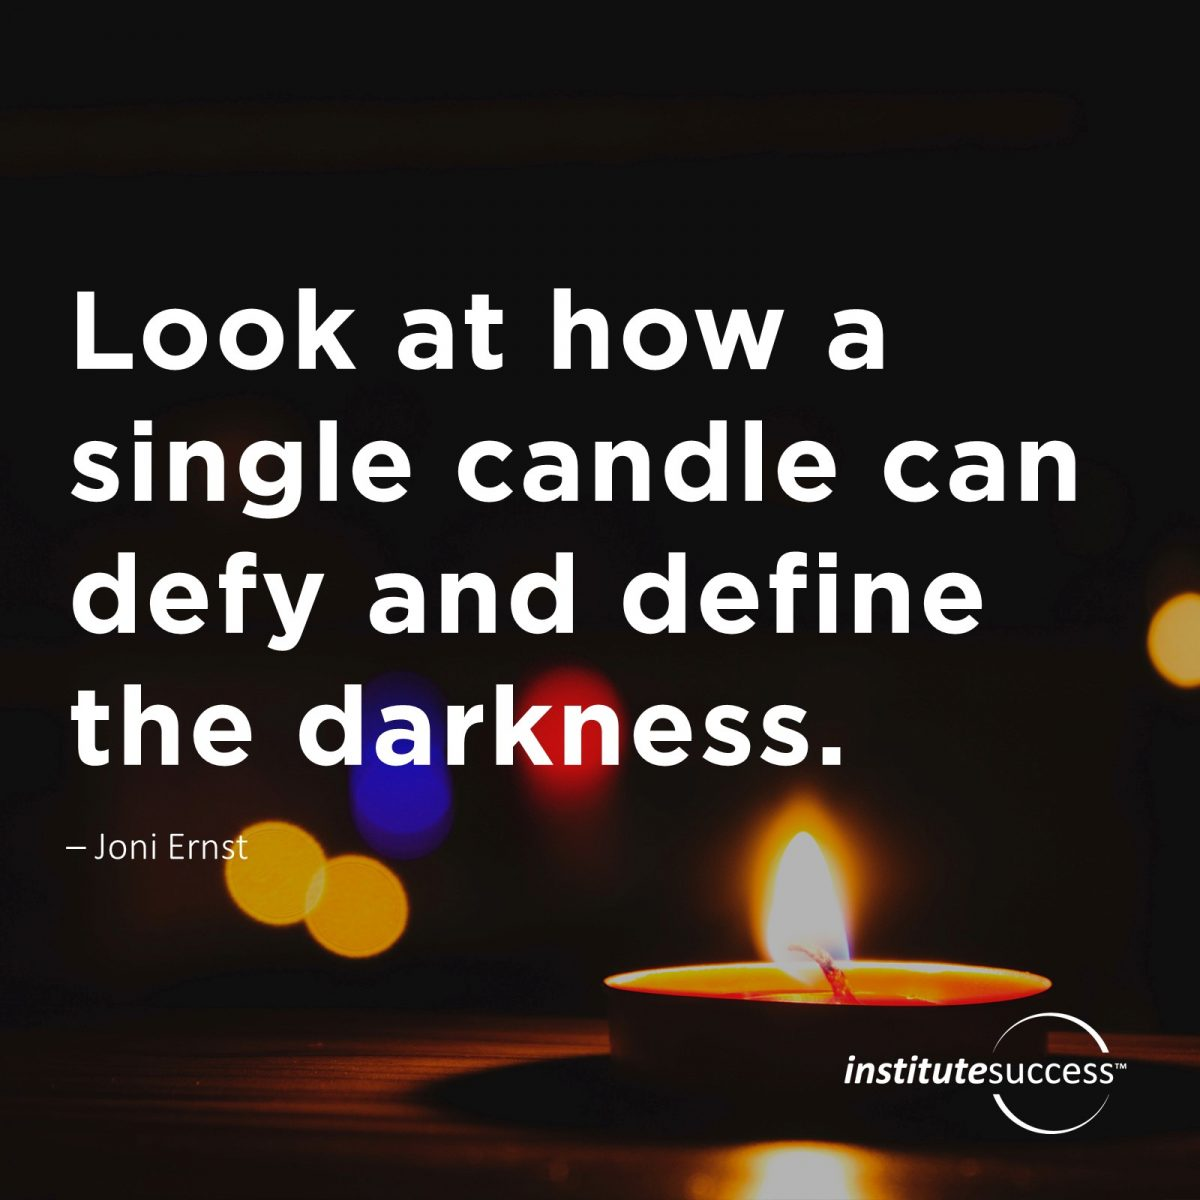 Look at how aLook at how a single candle can defy and define the darkness – Anne Frank